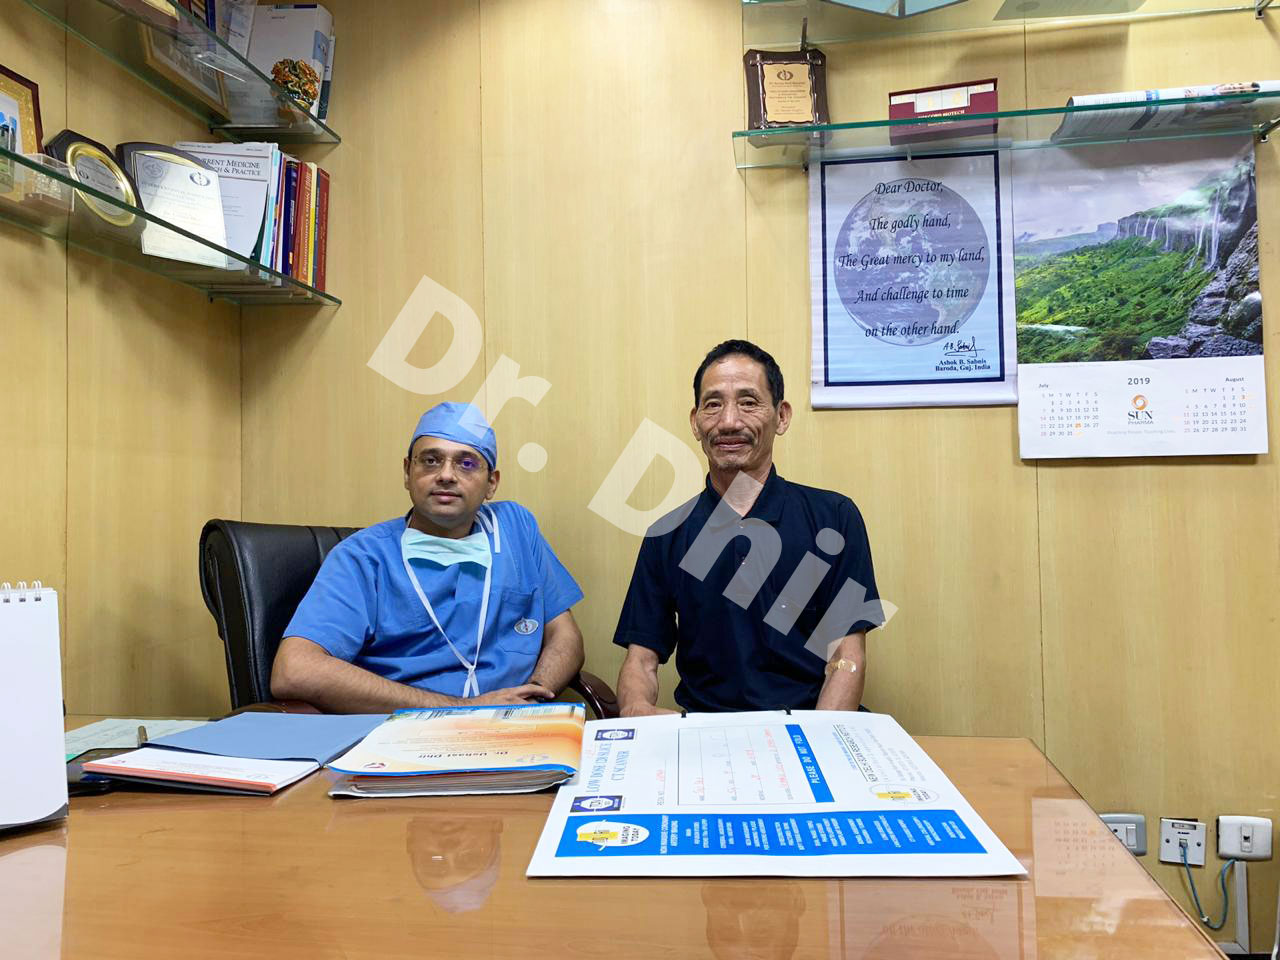 Patient from Arunachal Pradesh after surgery for liver cancer. 80% liver removed and patient doing well with no recurrence.